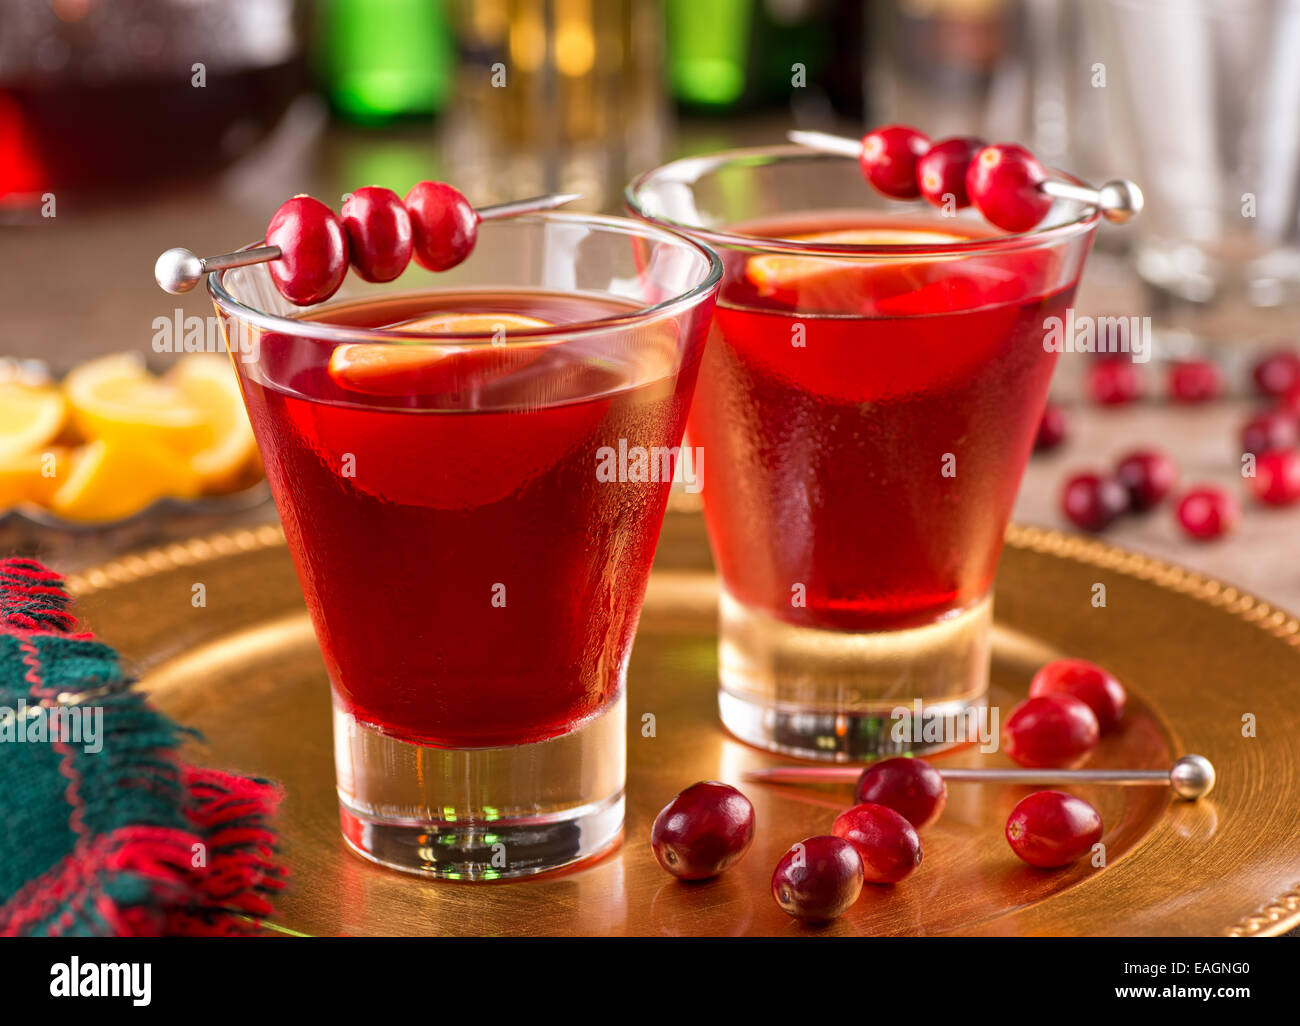 Two delicious cranberry cocktails with cranberry juice and lemon. - Stock Image